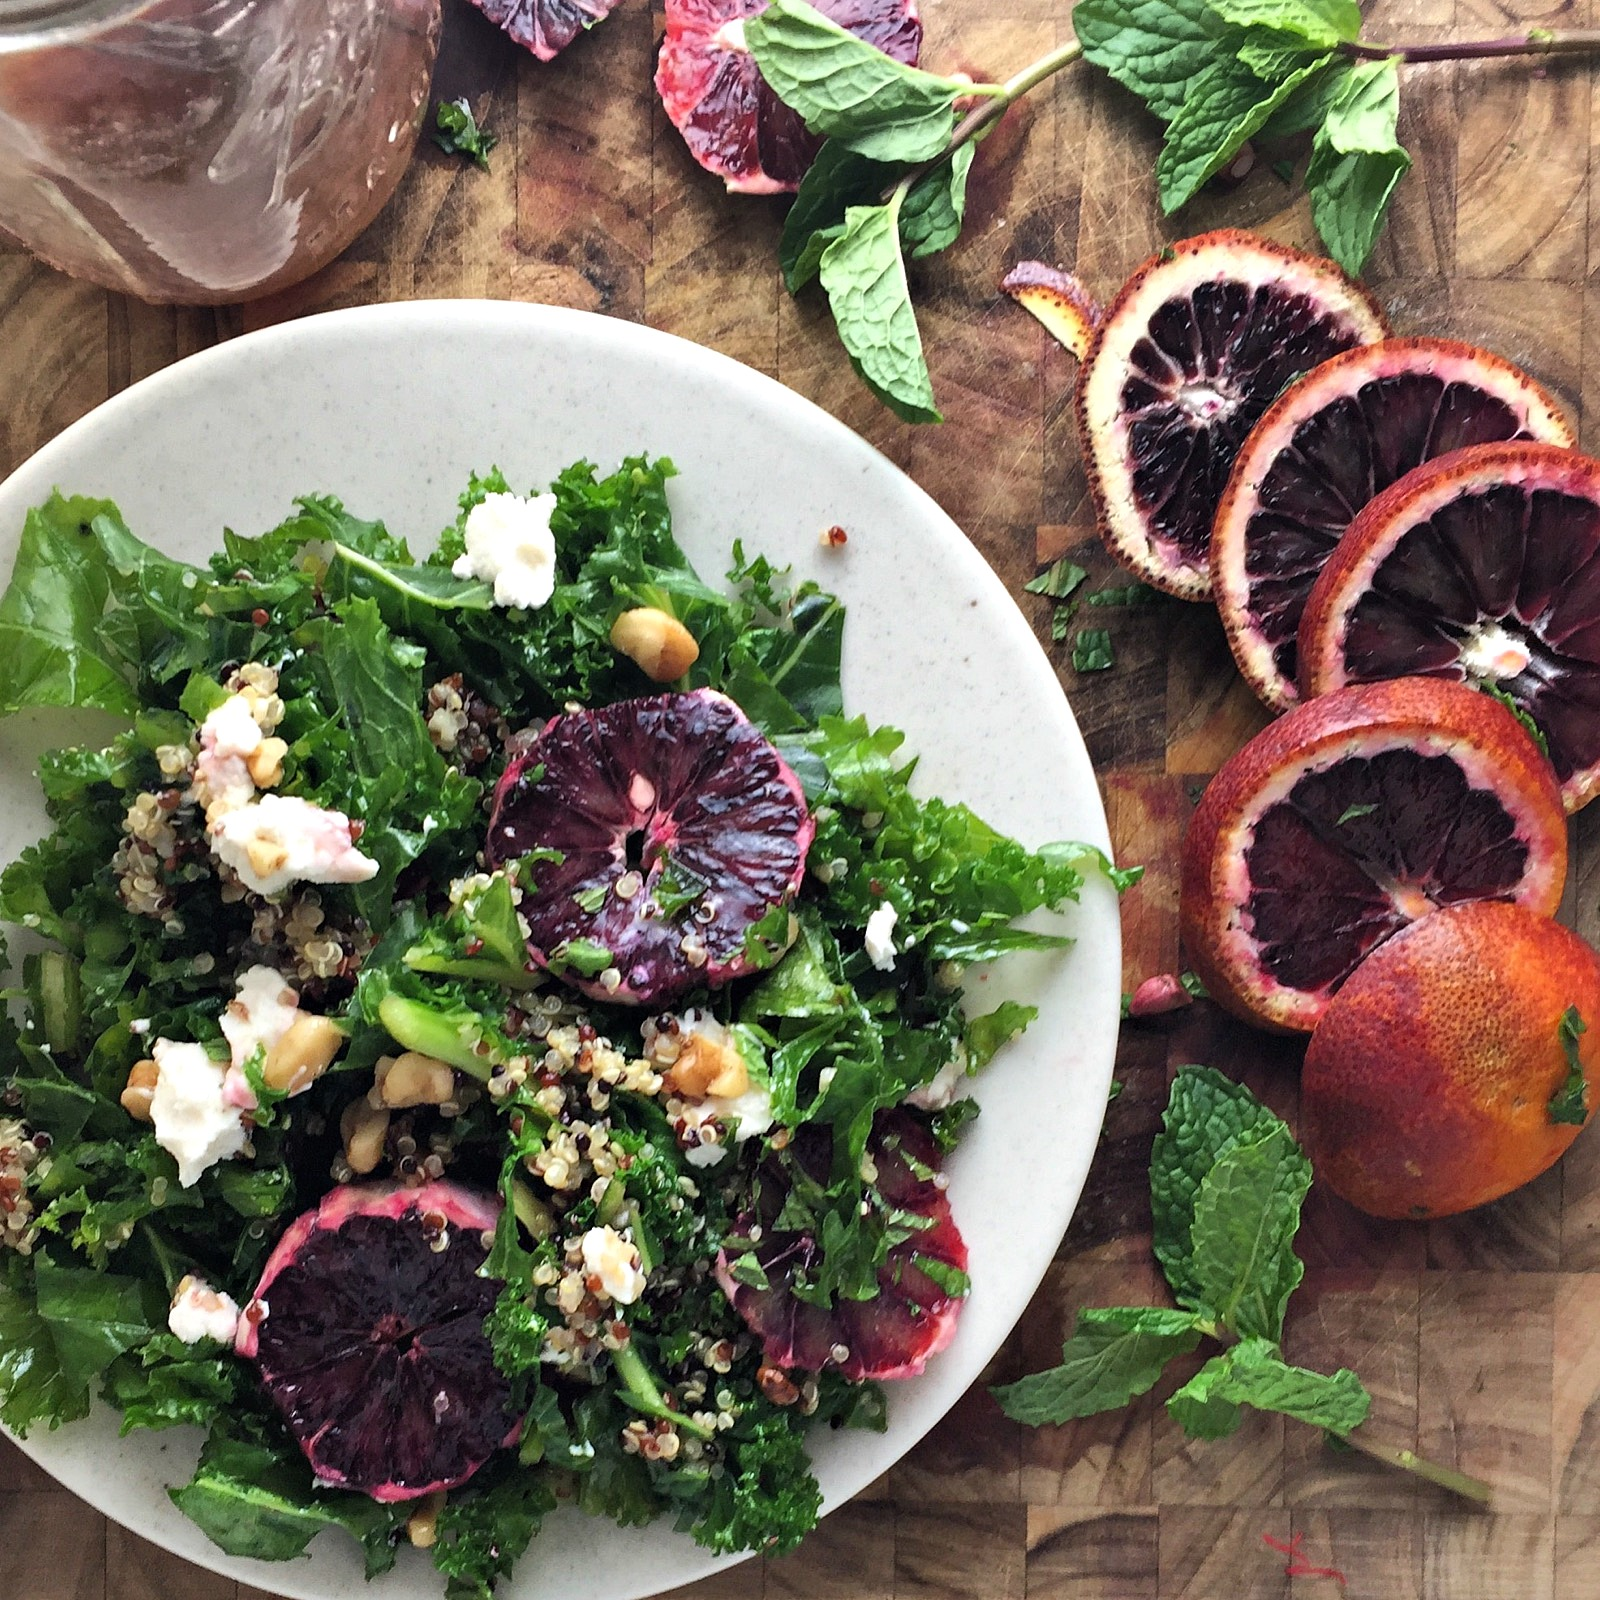 Kale, Quinoa and Walnut Salad with Blood Orange Vinaigrette